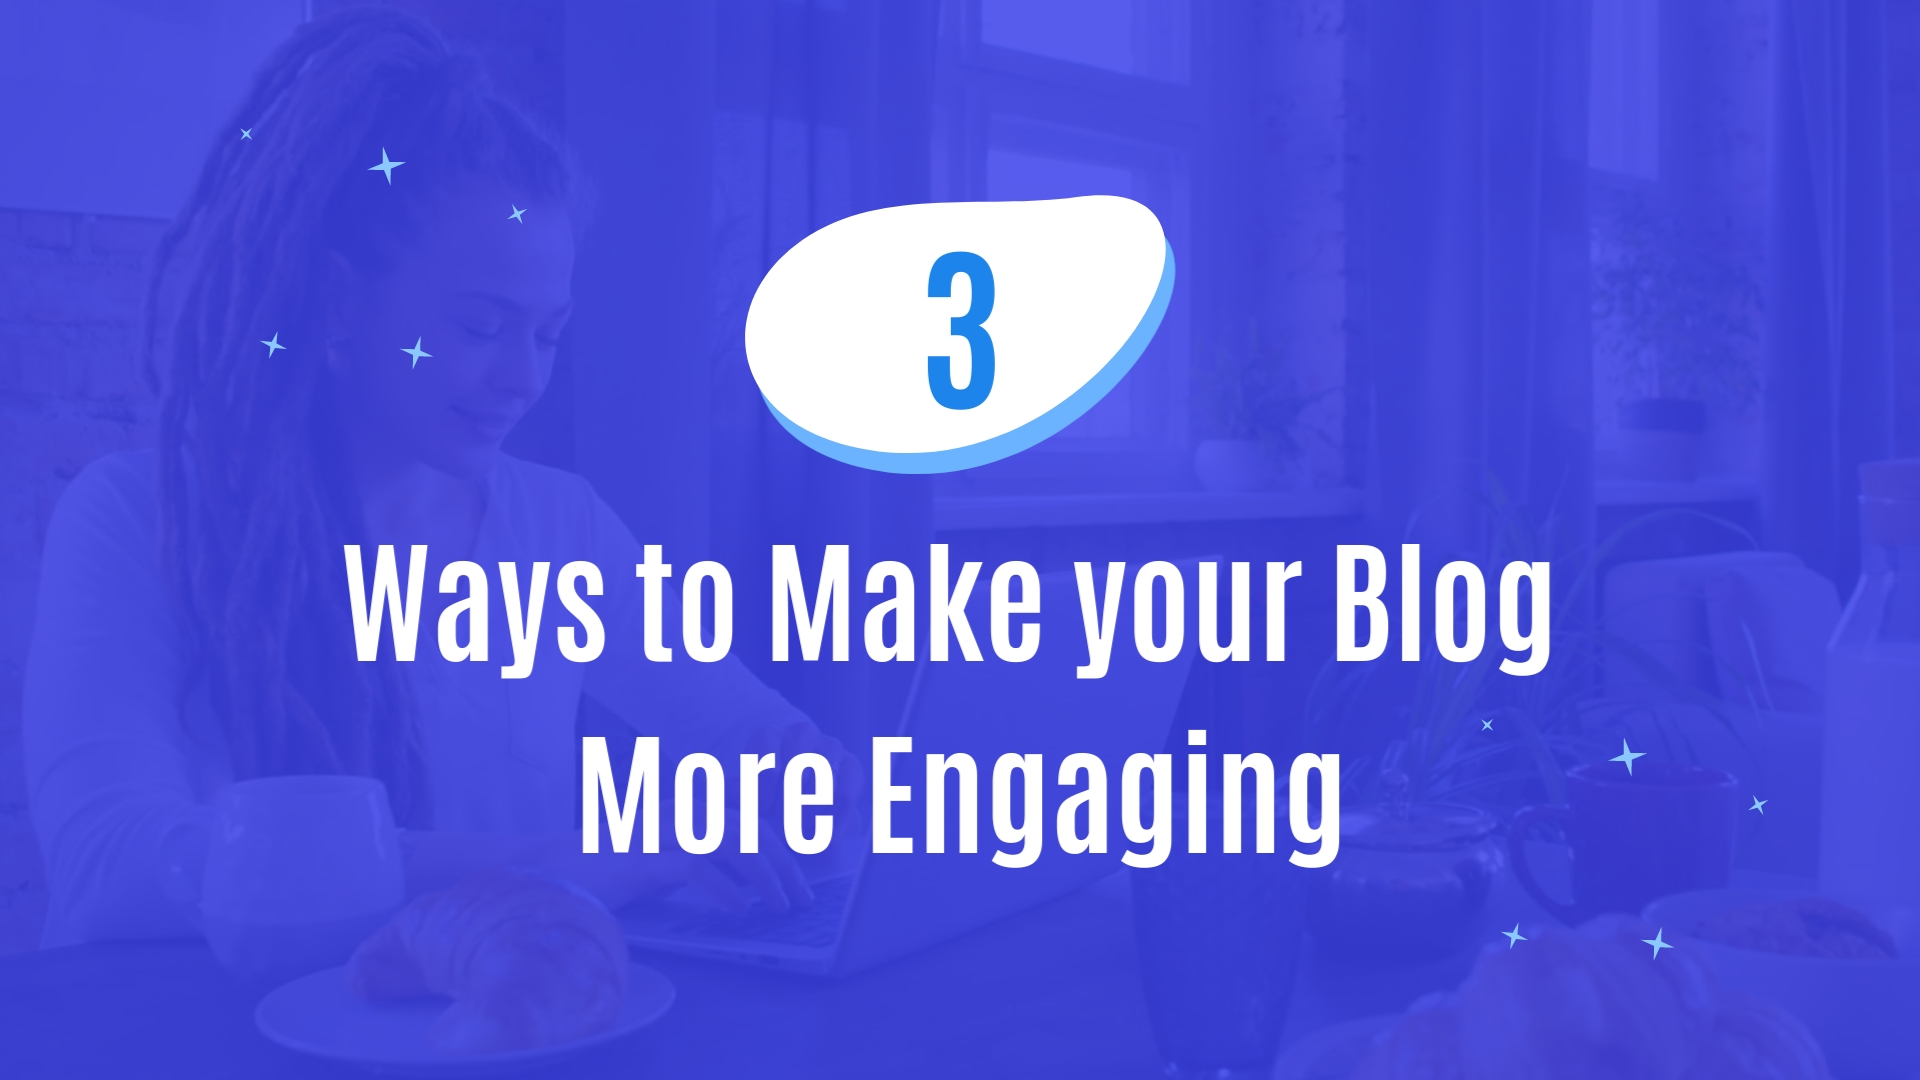 3 Ways to Make Your Blog More Engaging - Listicle Video Template